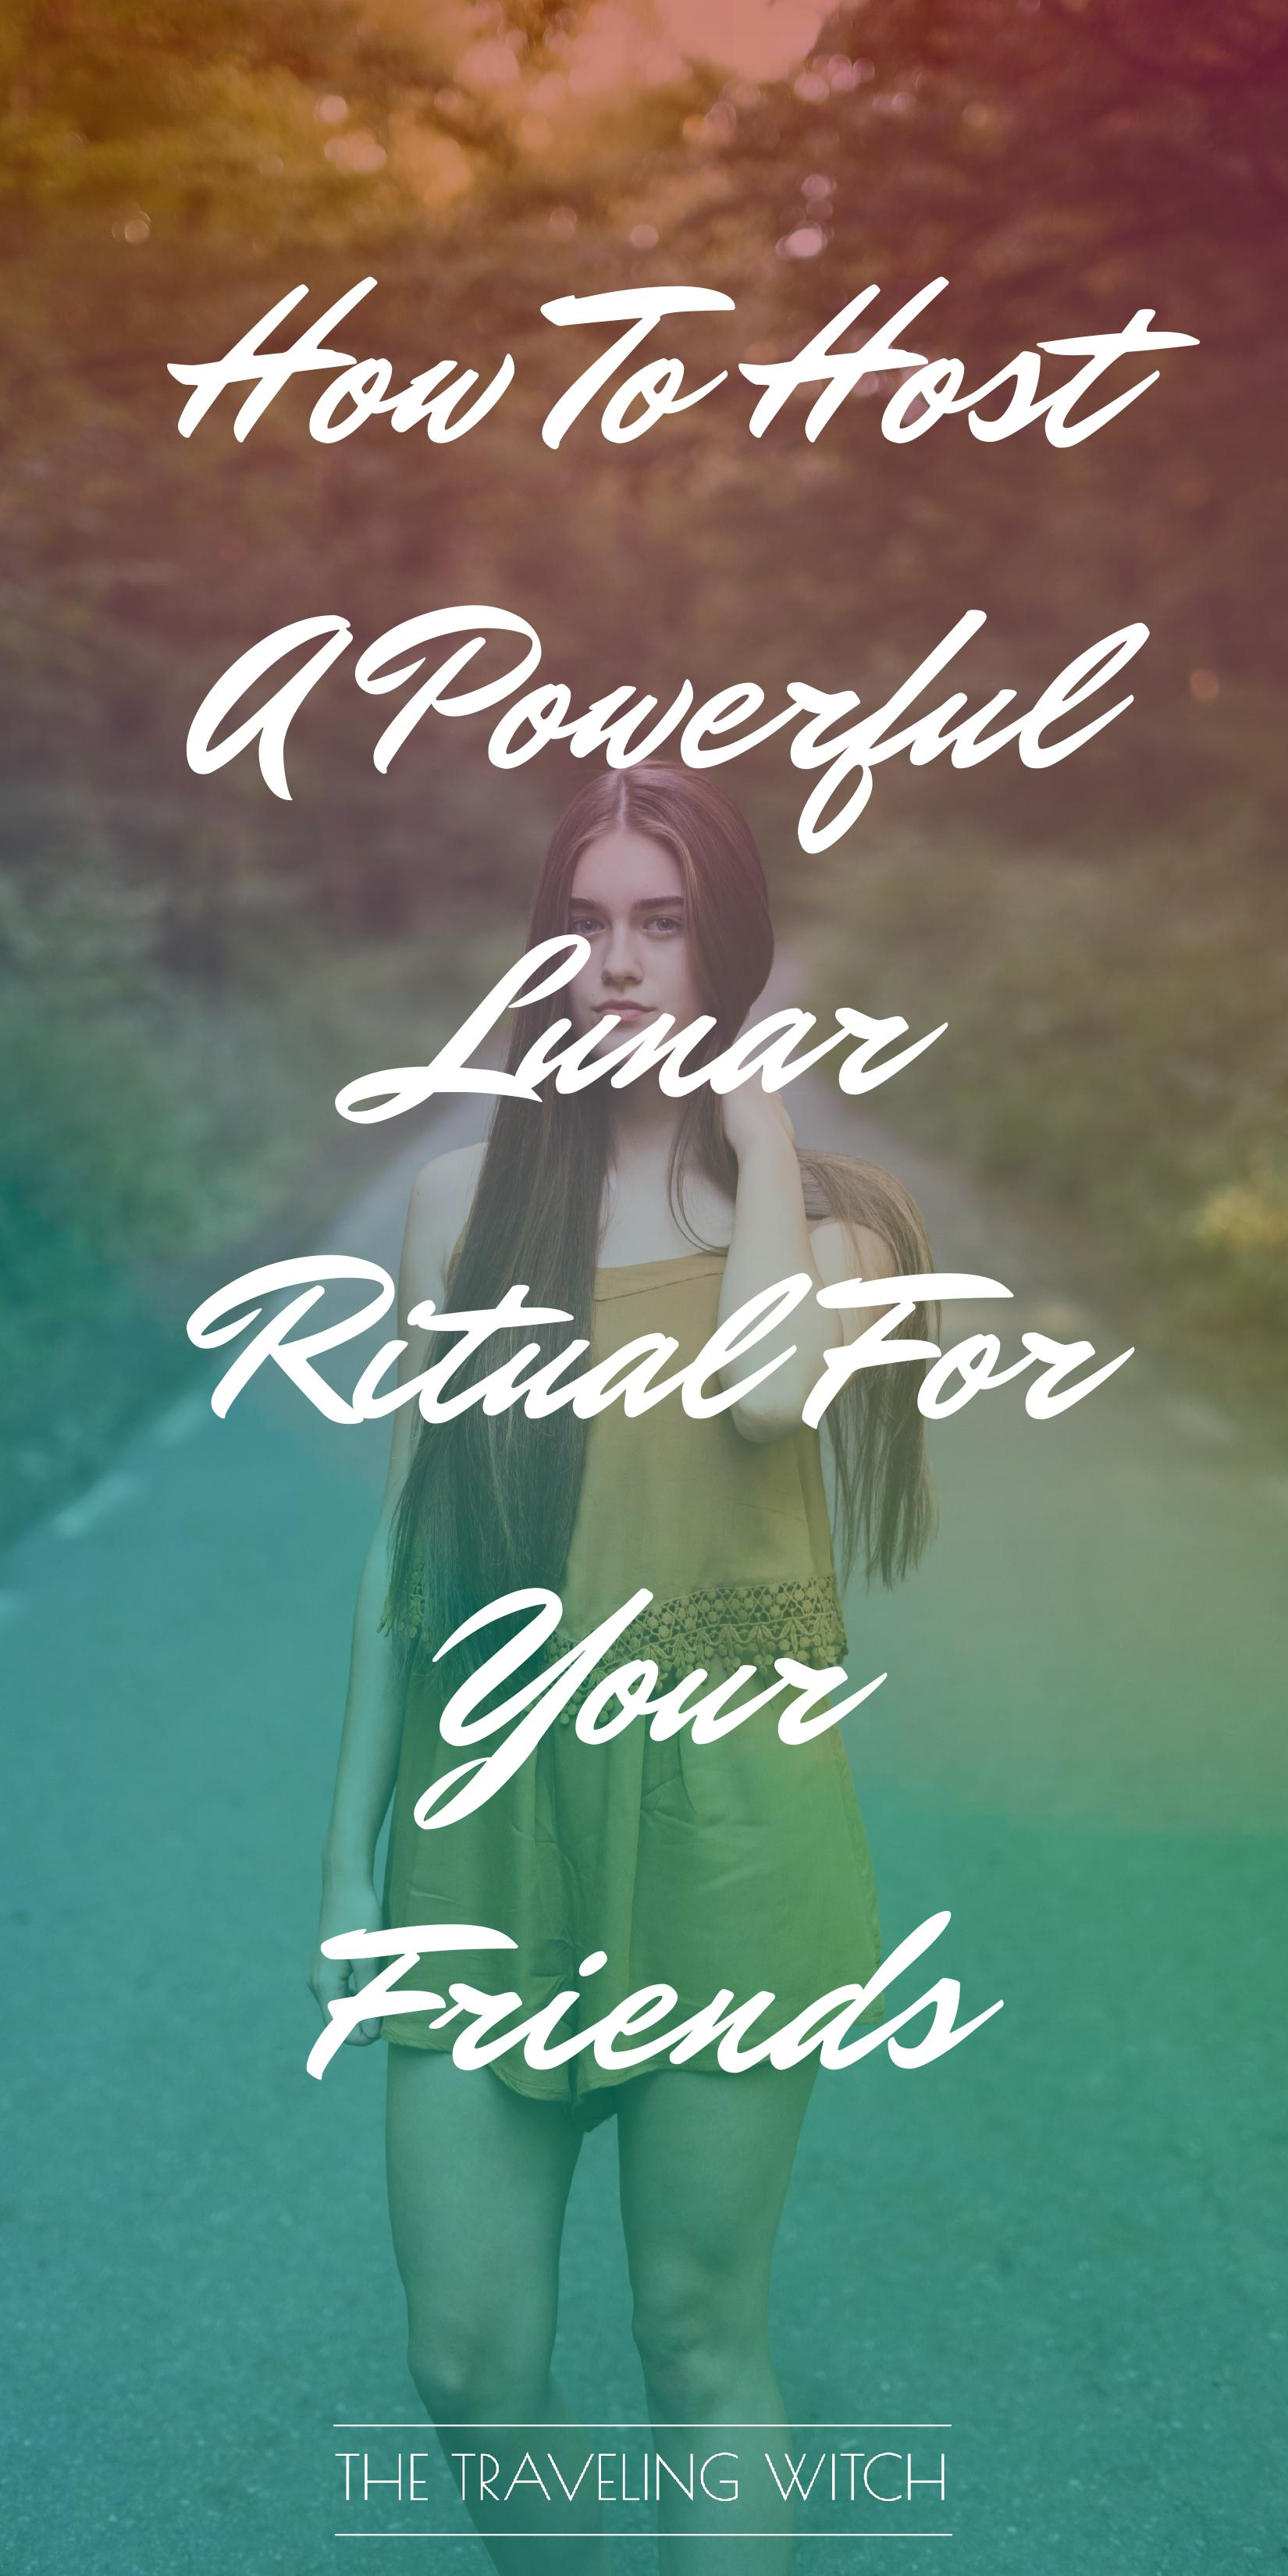 How To Host A Powerful Lunar Ritual For Your Friends by The Traveling Witch #Witchcraft #Magic